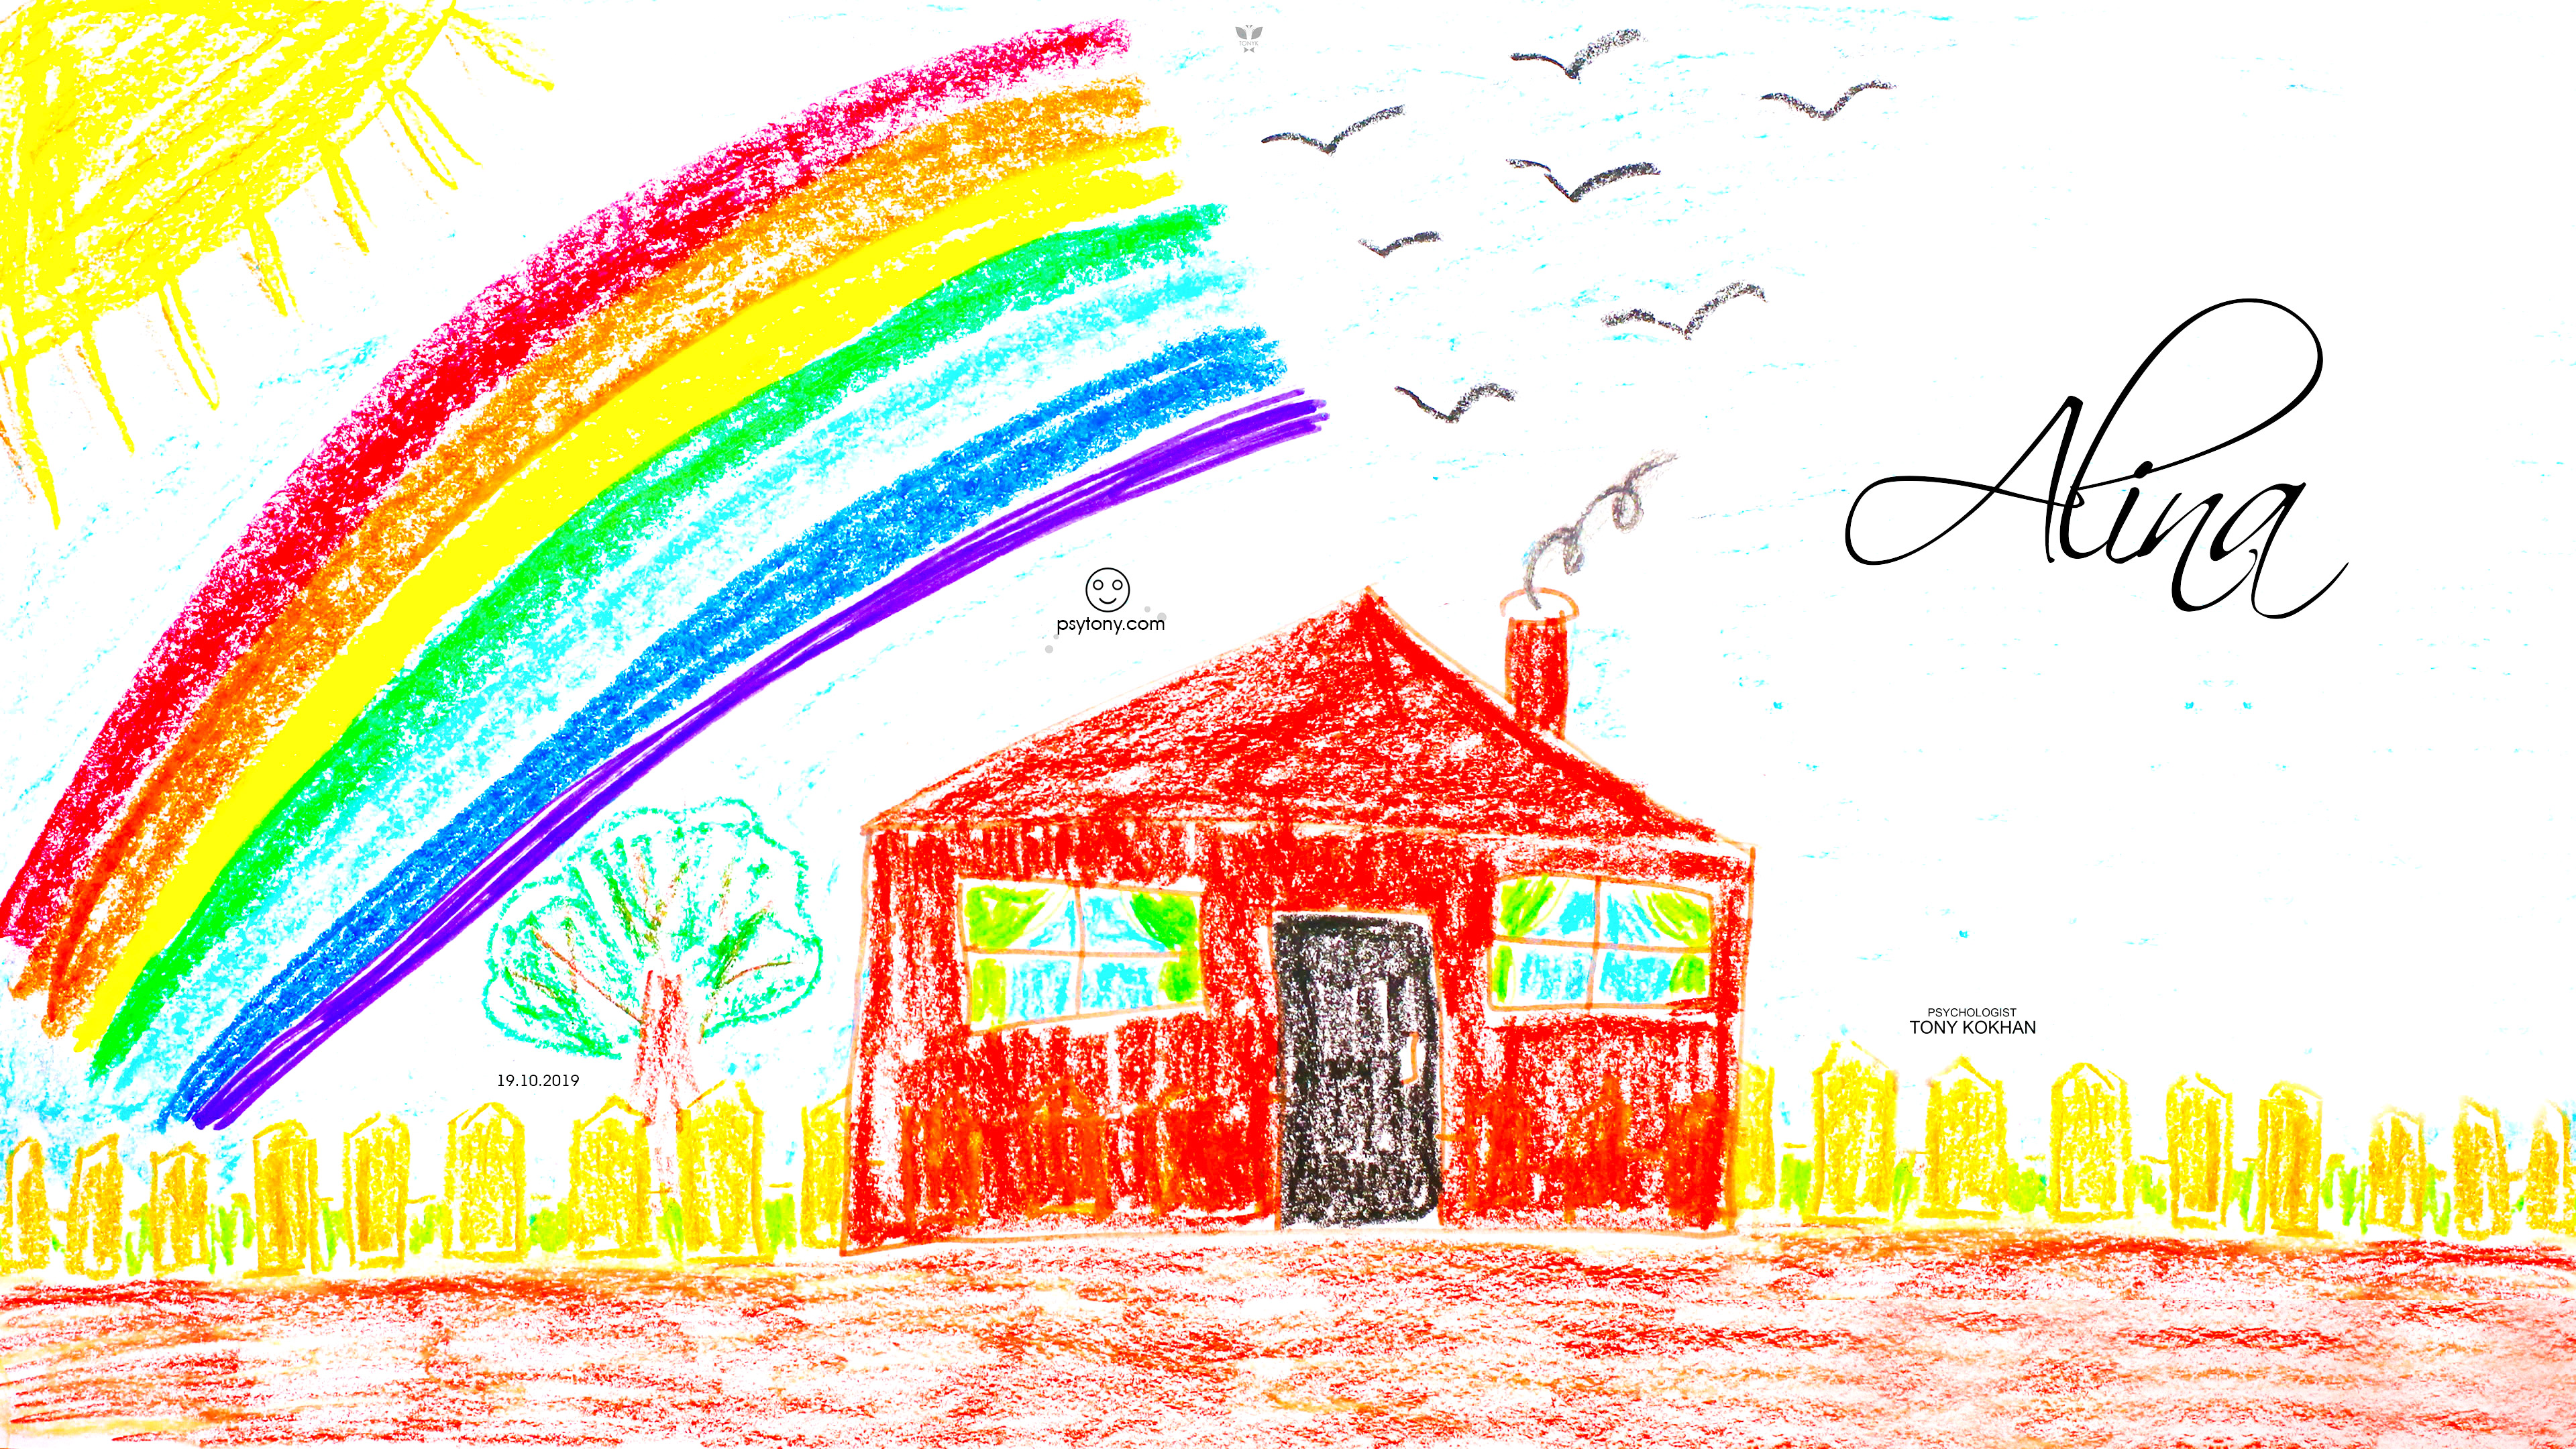 Alina-Soul-Girl-Sun-Rainbow-Tree-Home-Close-Door-Smoke-Birds-Fence-Evil-Emotions-Picture-Drawing-with-Pastel-2019-Multicolors-4K-Wallpapers-by-Psychologist-Tony-Kokhan-www.psytony.com-image